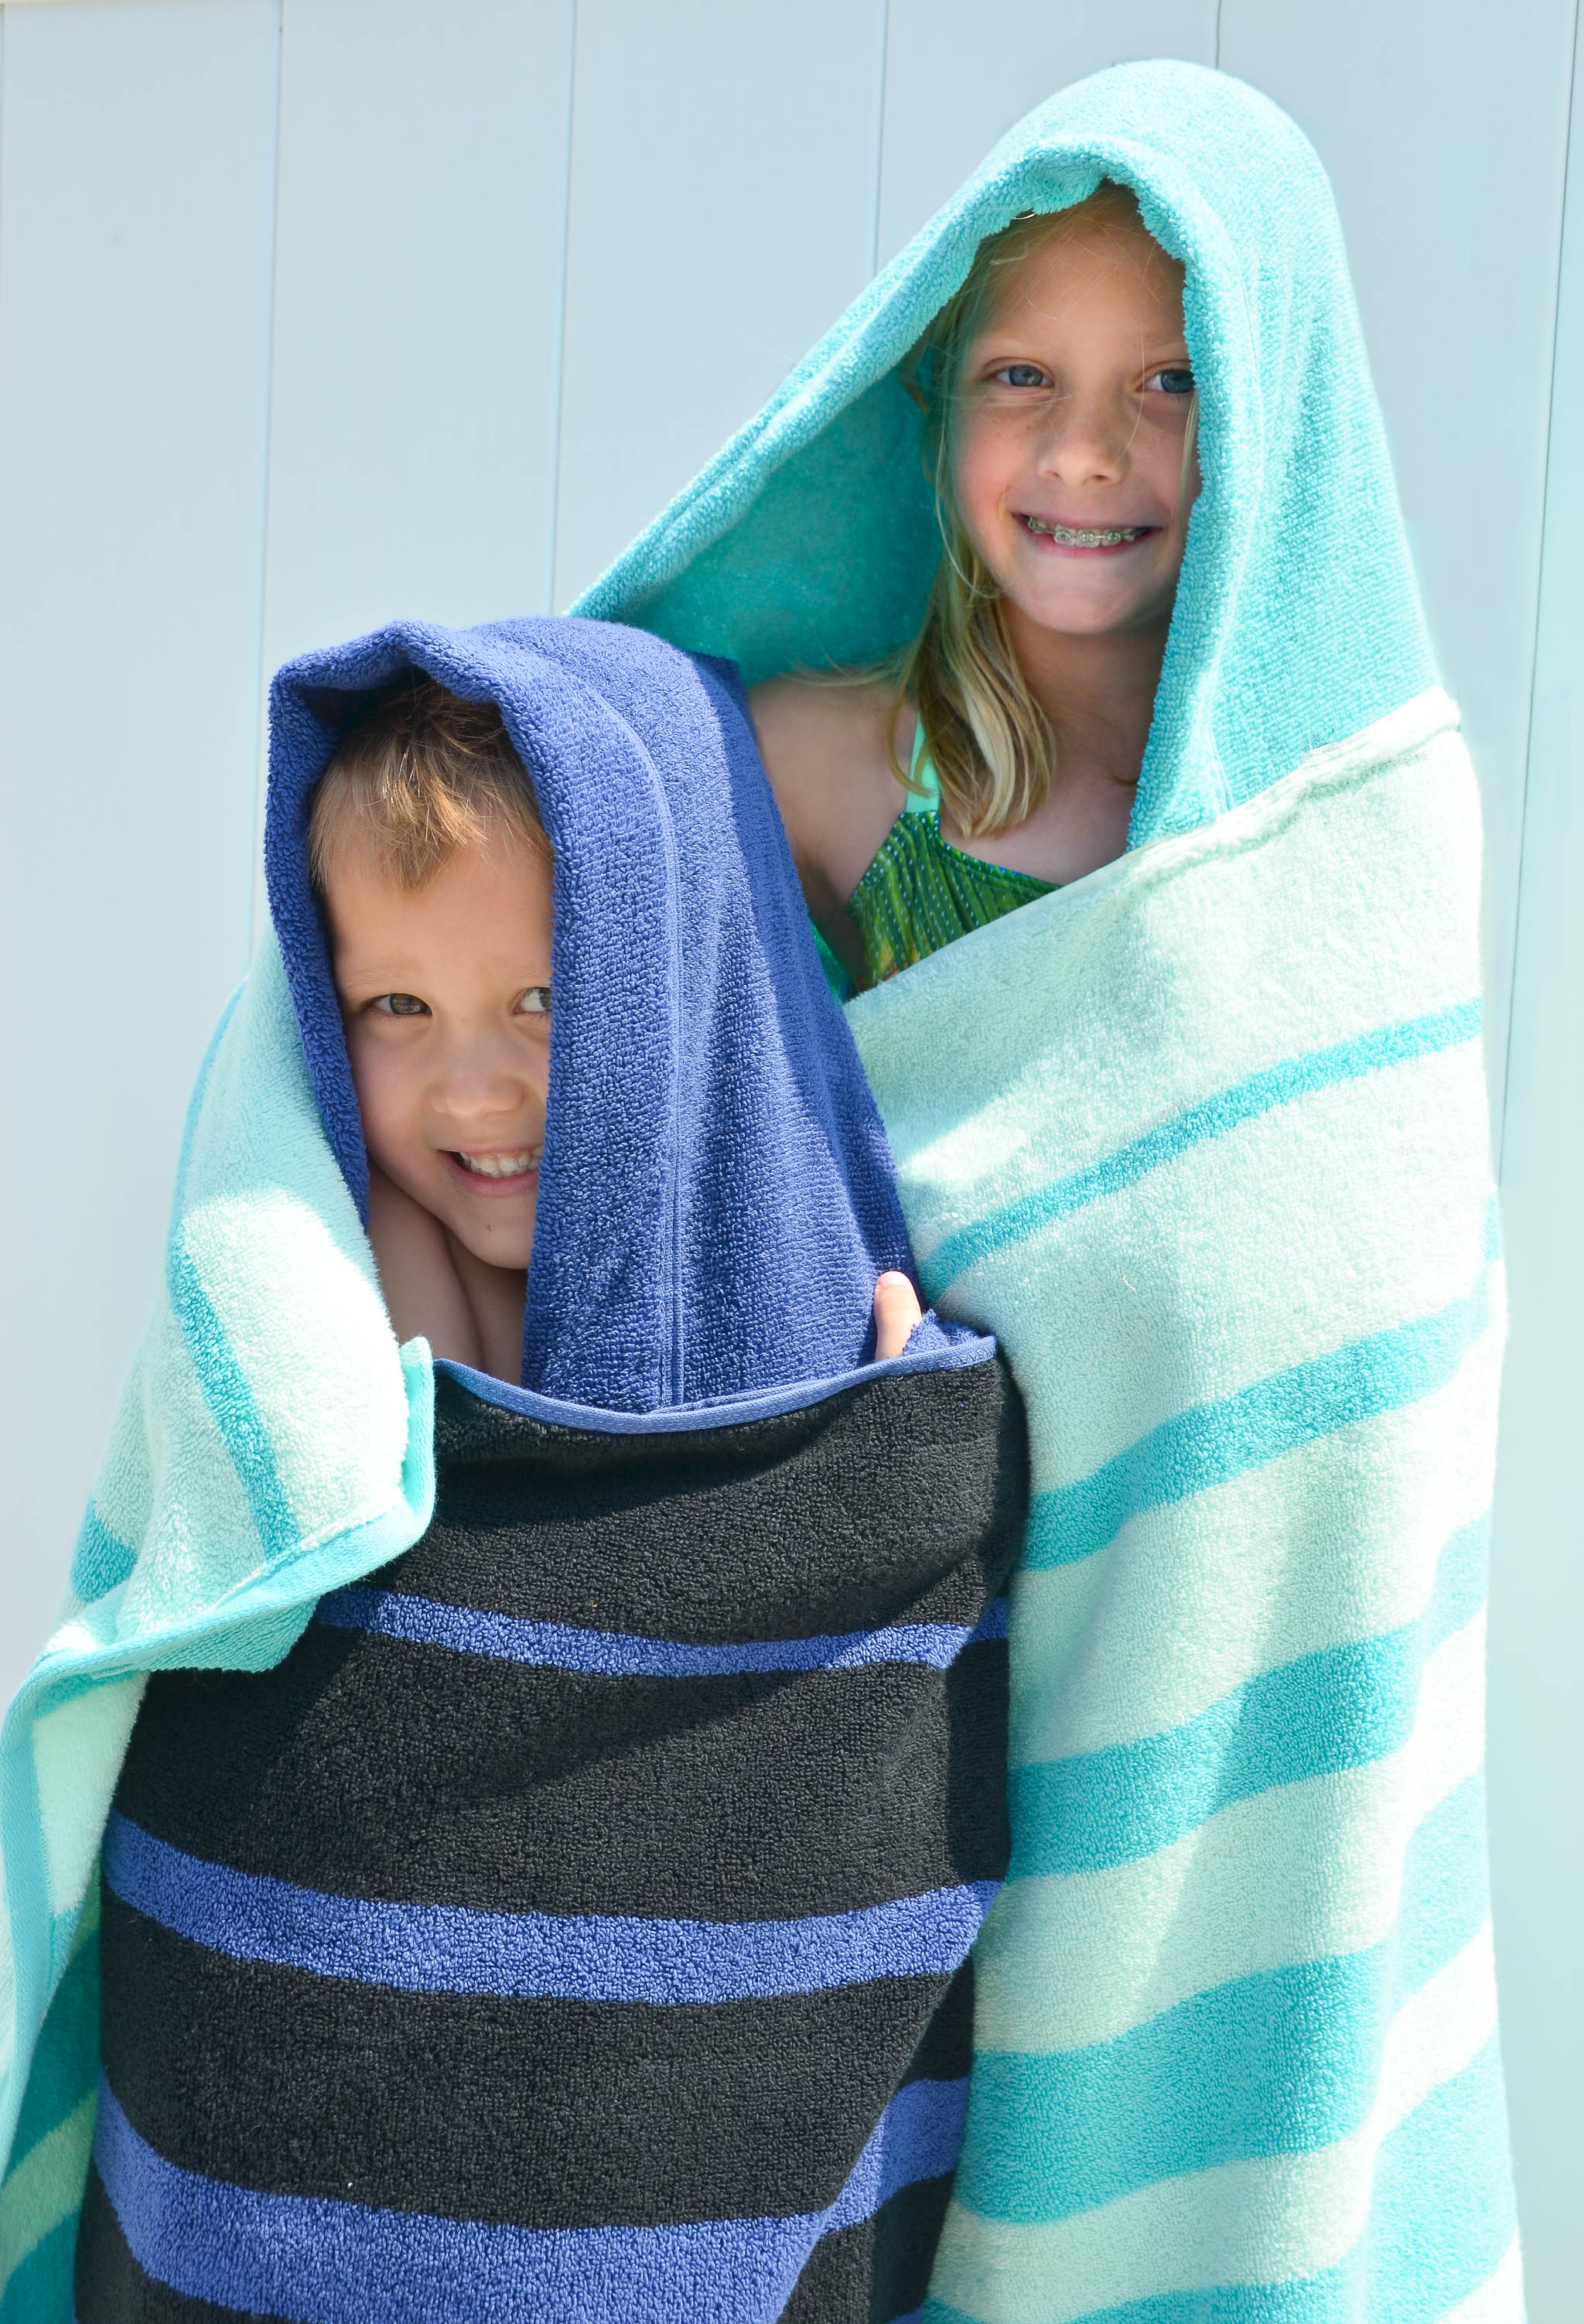 A DIY Hooded Towel That Your Kiddo Wont Immediately